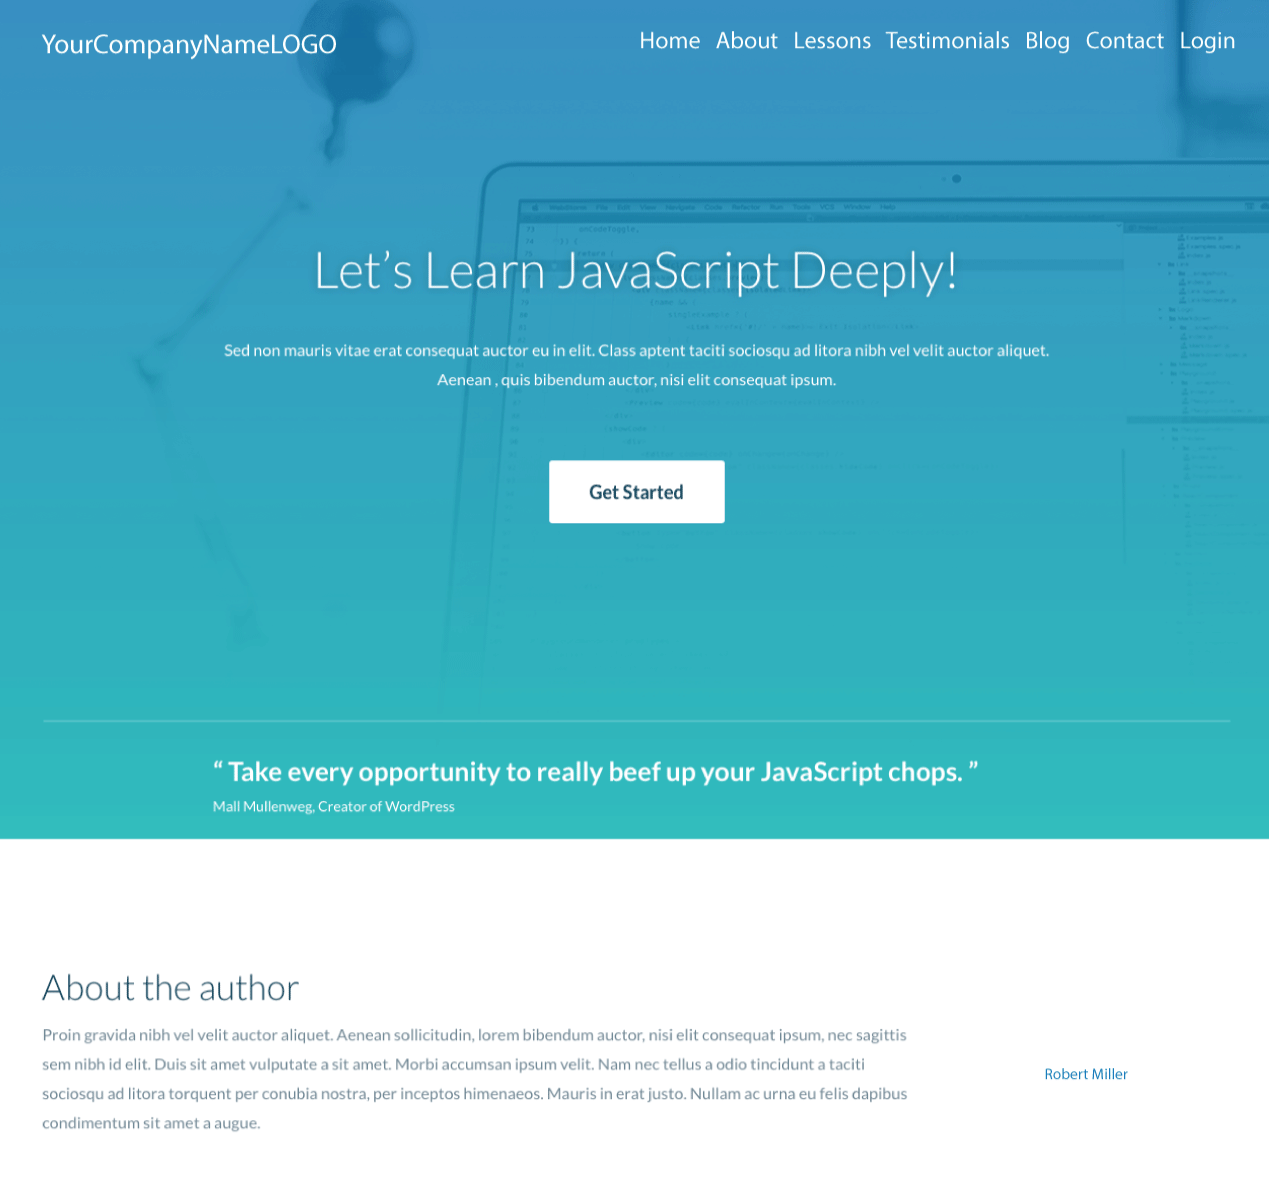 An Image of a new Javascript Training website design